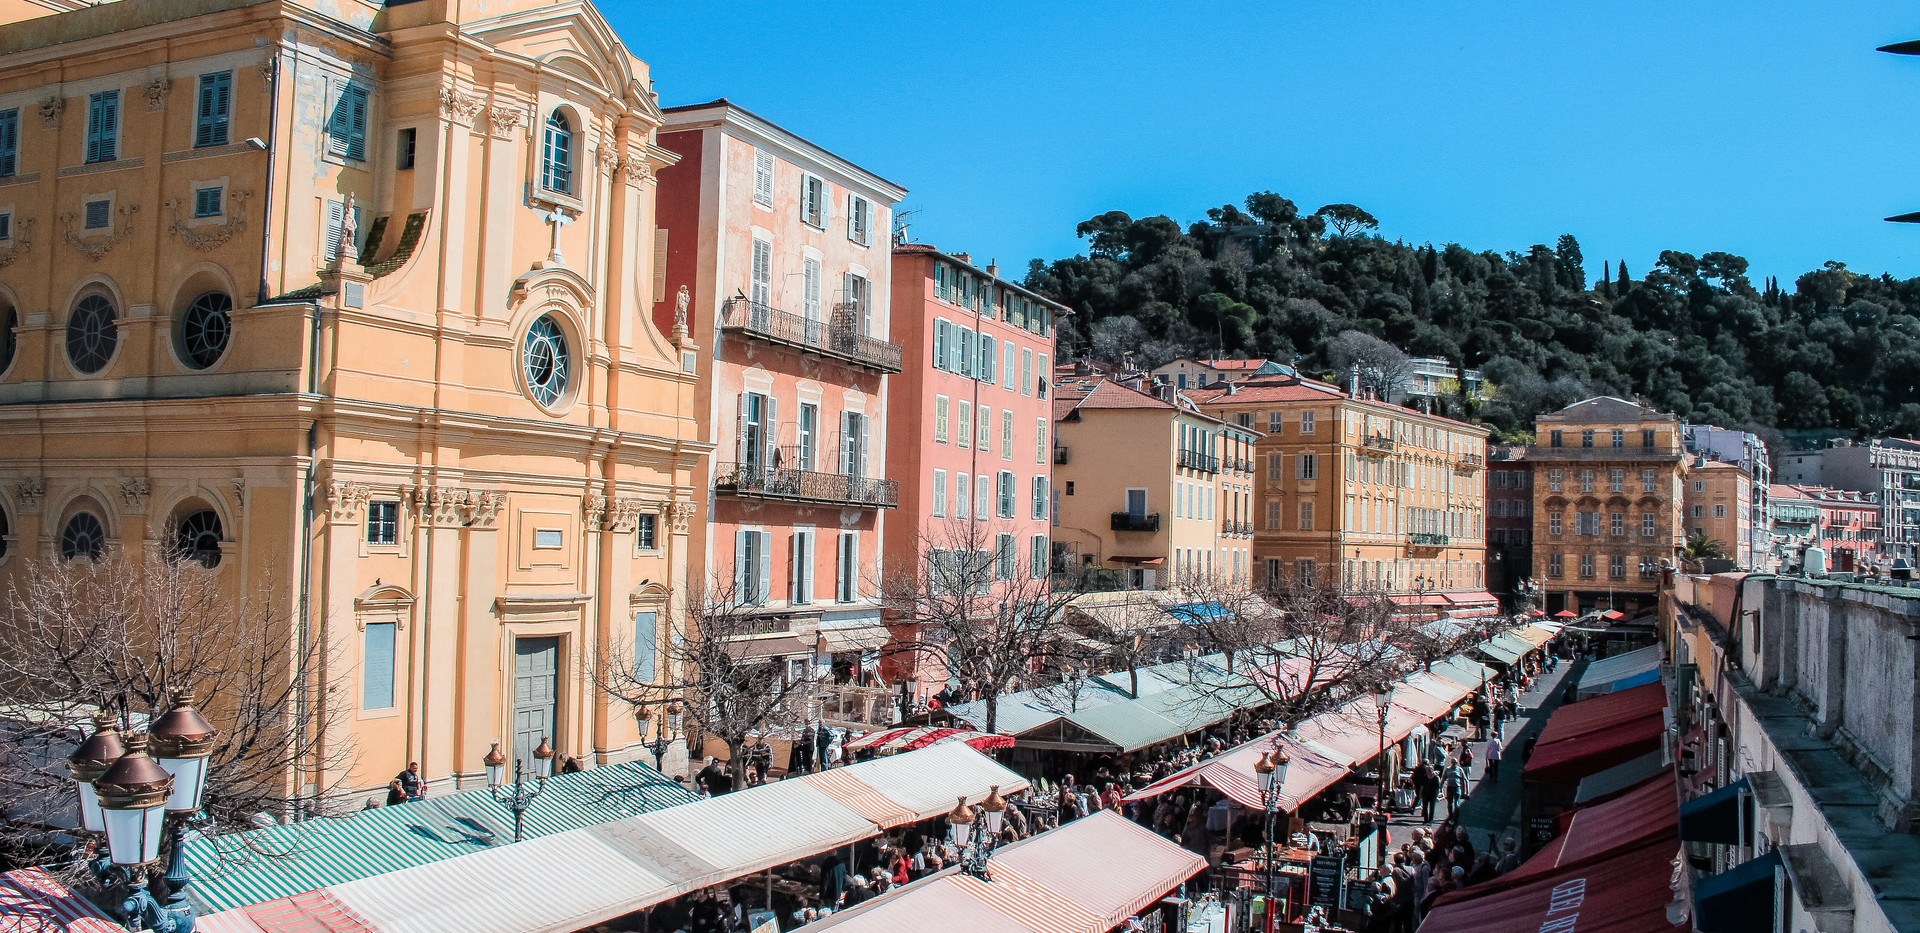 Markets in Nice